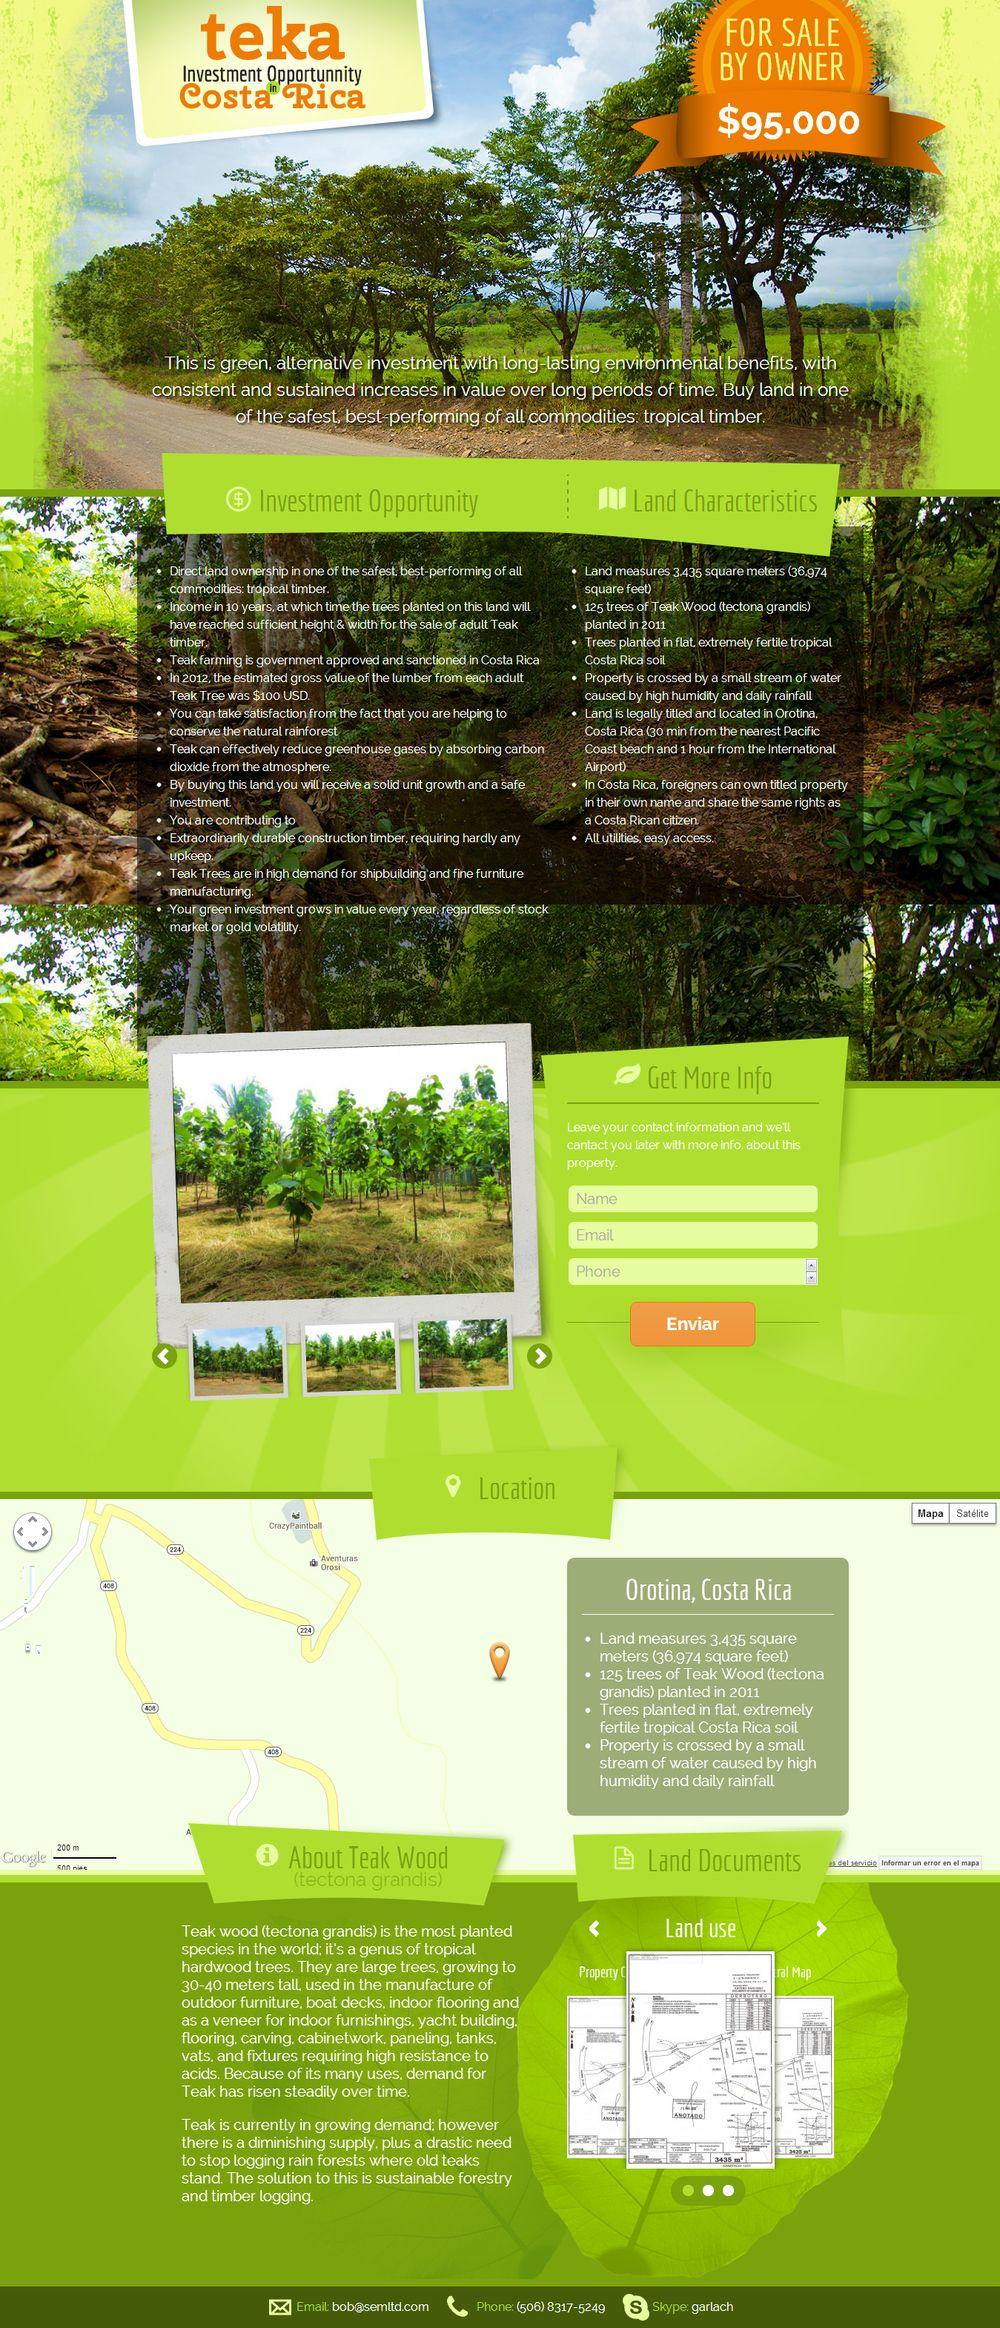 Landing Page / Single Page Website Design by hachesilva - 14843